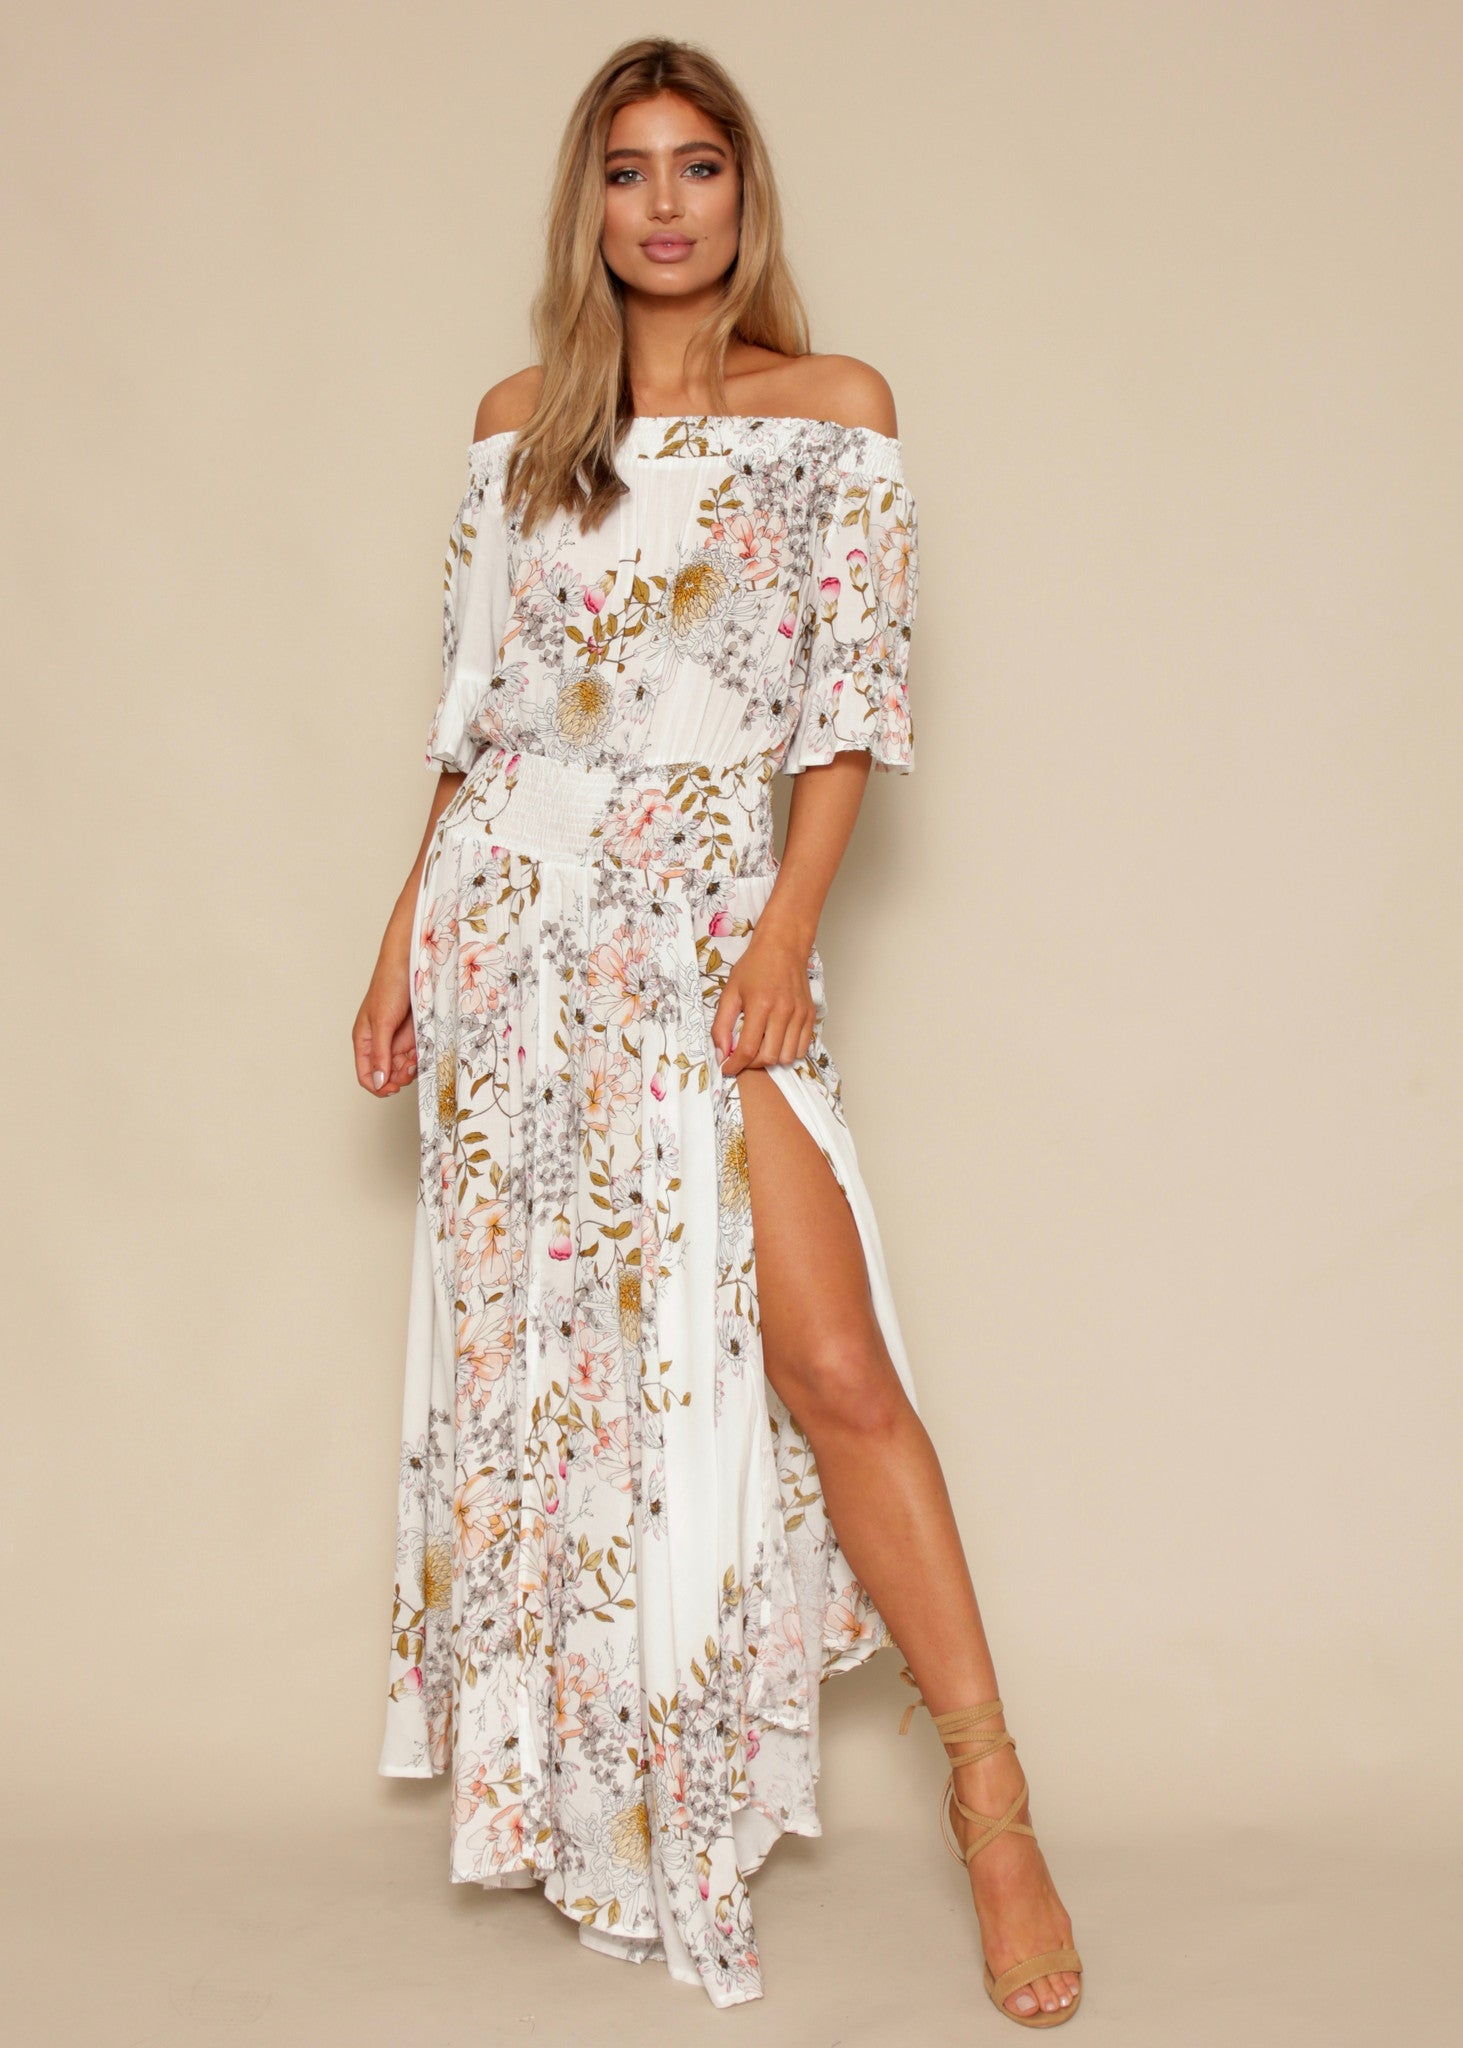 Boho Leah Maxi Dress - Delilah